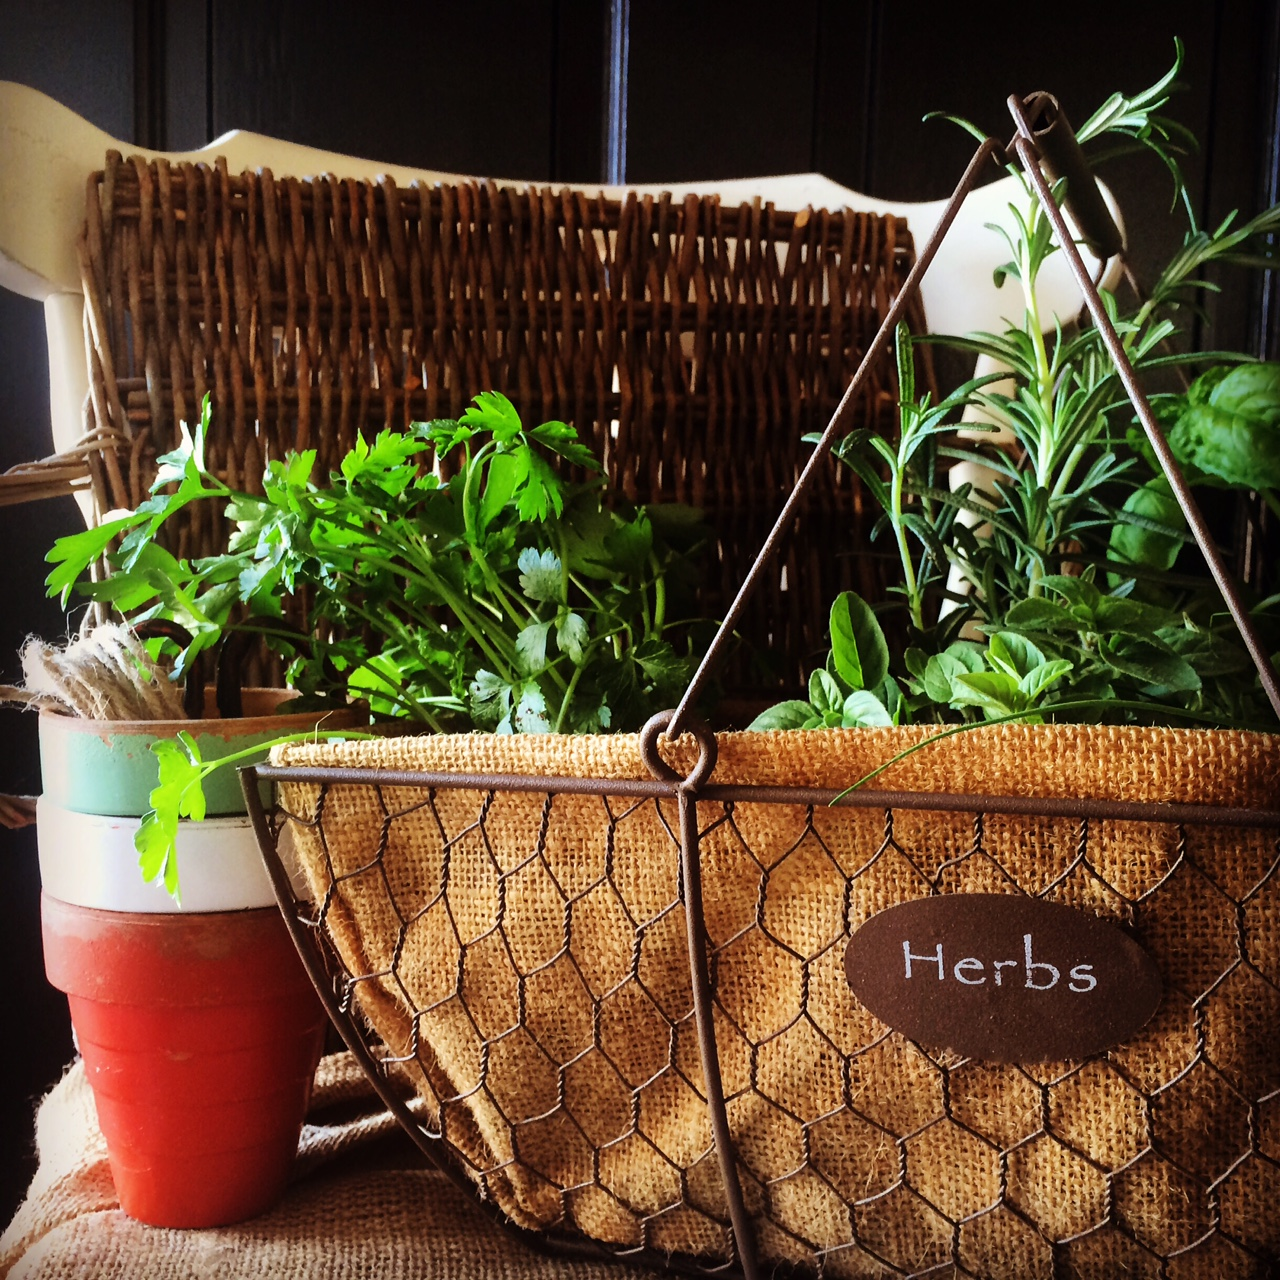 Basket of Fresh Herbs by Patricia for Casagiove